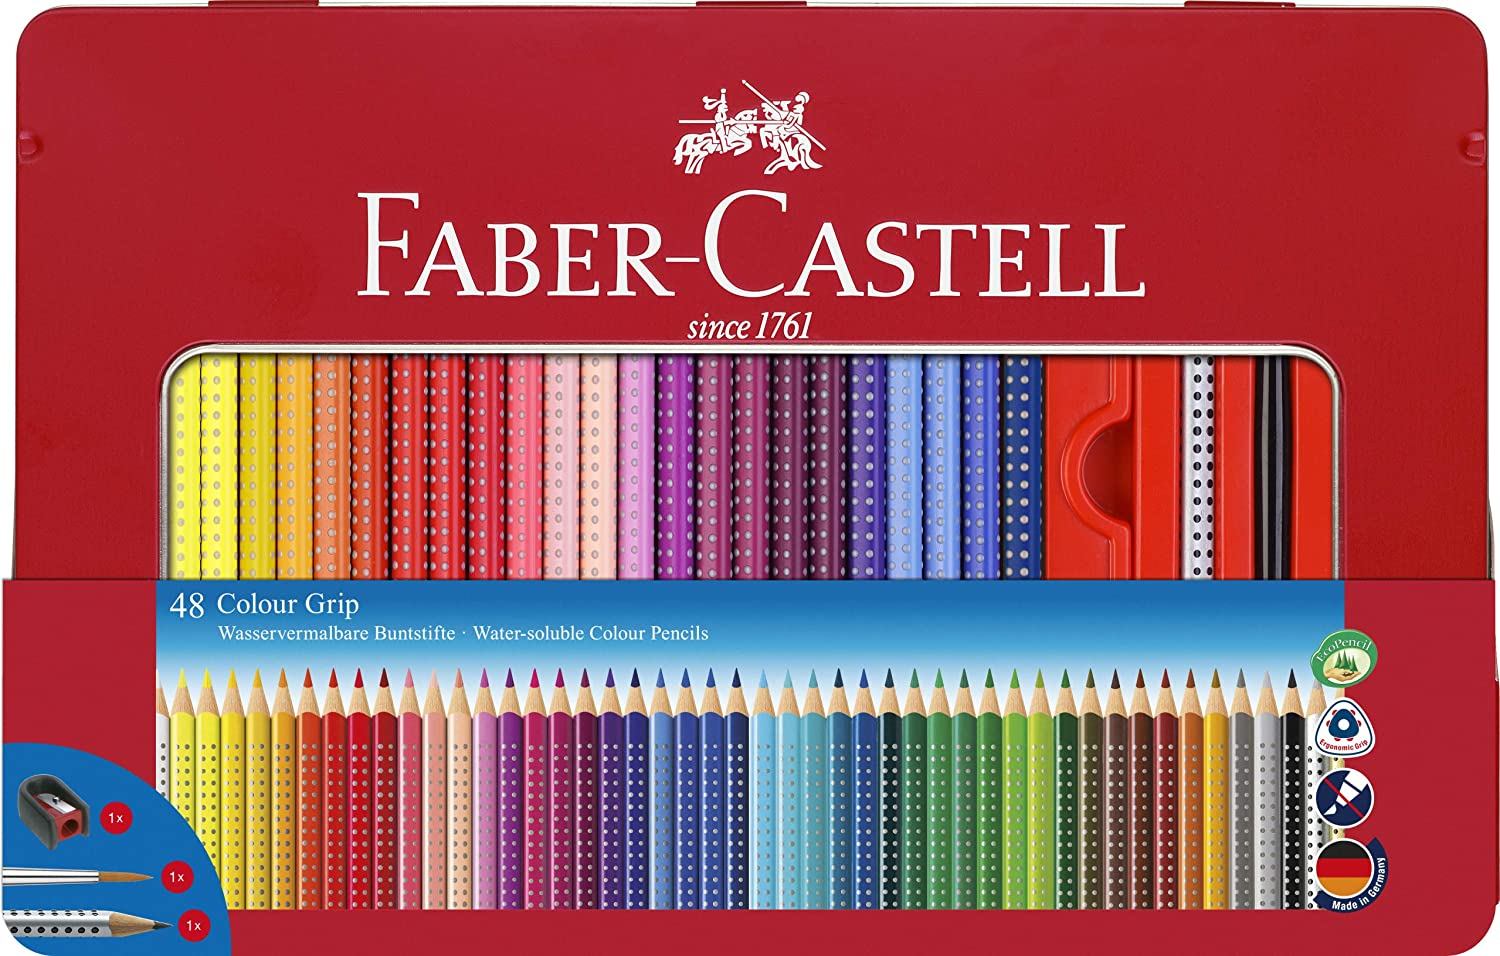 Faber-Castell 112448 - Estuche de metal con 48 ecolápices de color Grip, lápiz de grafito Grip 2001, pincel y afilalápices, multicolor: Amazon.es: Oficina y papelería